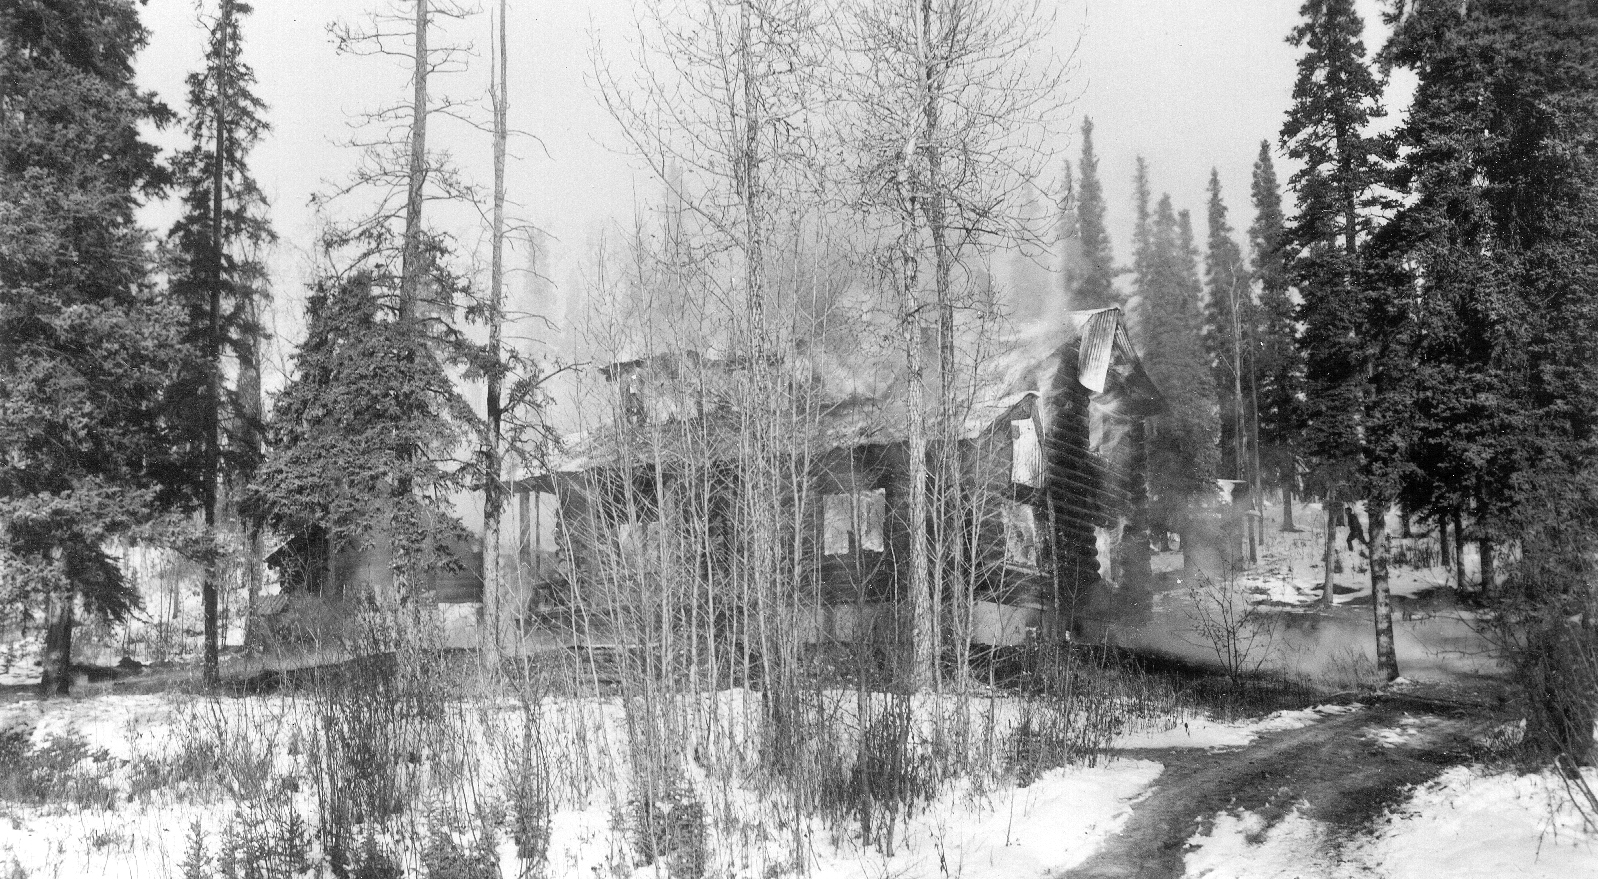 black and white image of a partially burnt building in a snowy forest